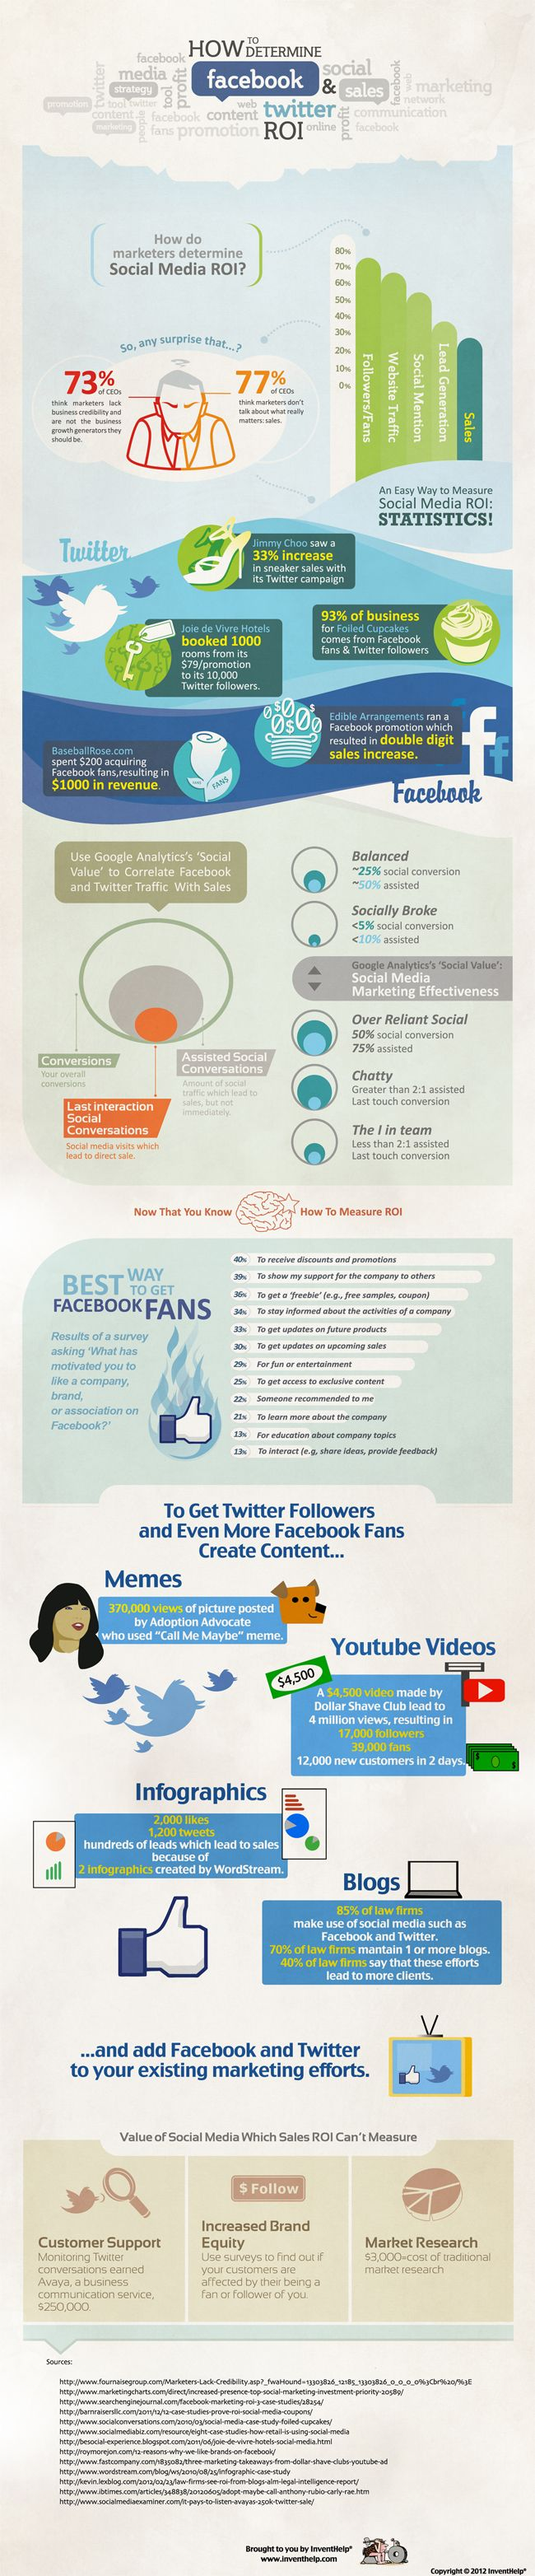 How Do You Determine Facebook and Twitter ROI? #infographic